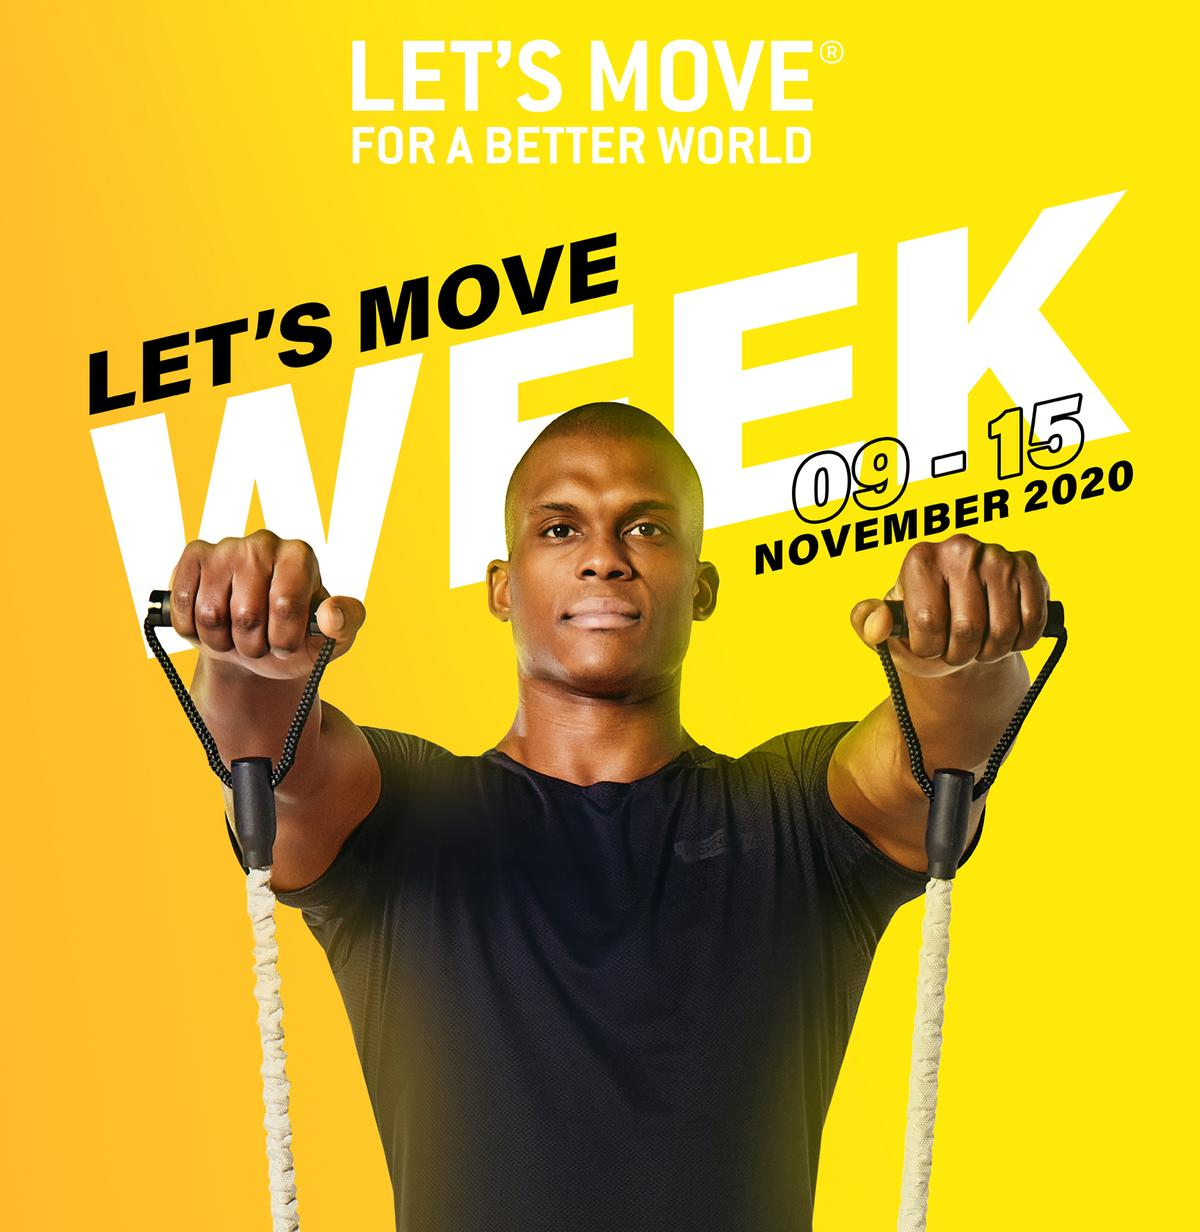 The worldwide campaign will feature both online and offline fitness events, challenges and activities  / Technogym